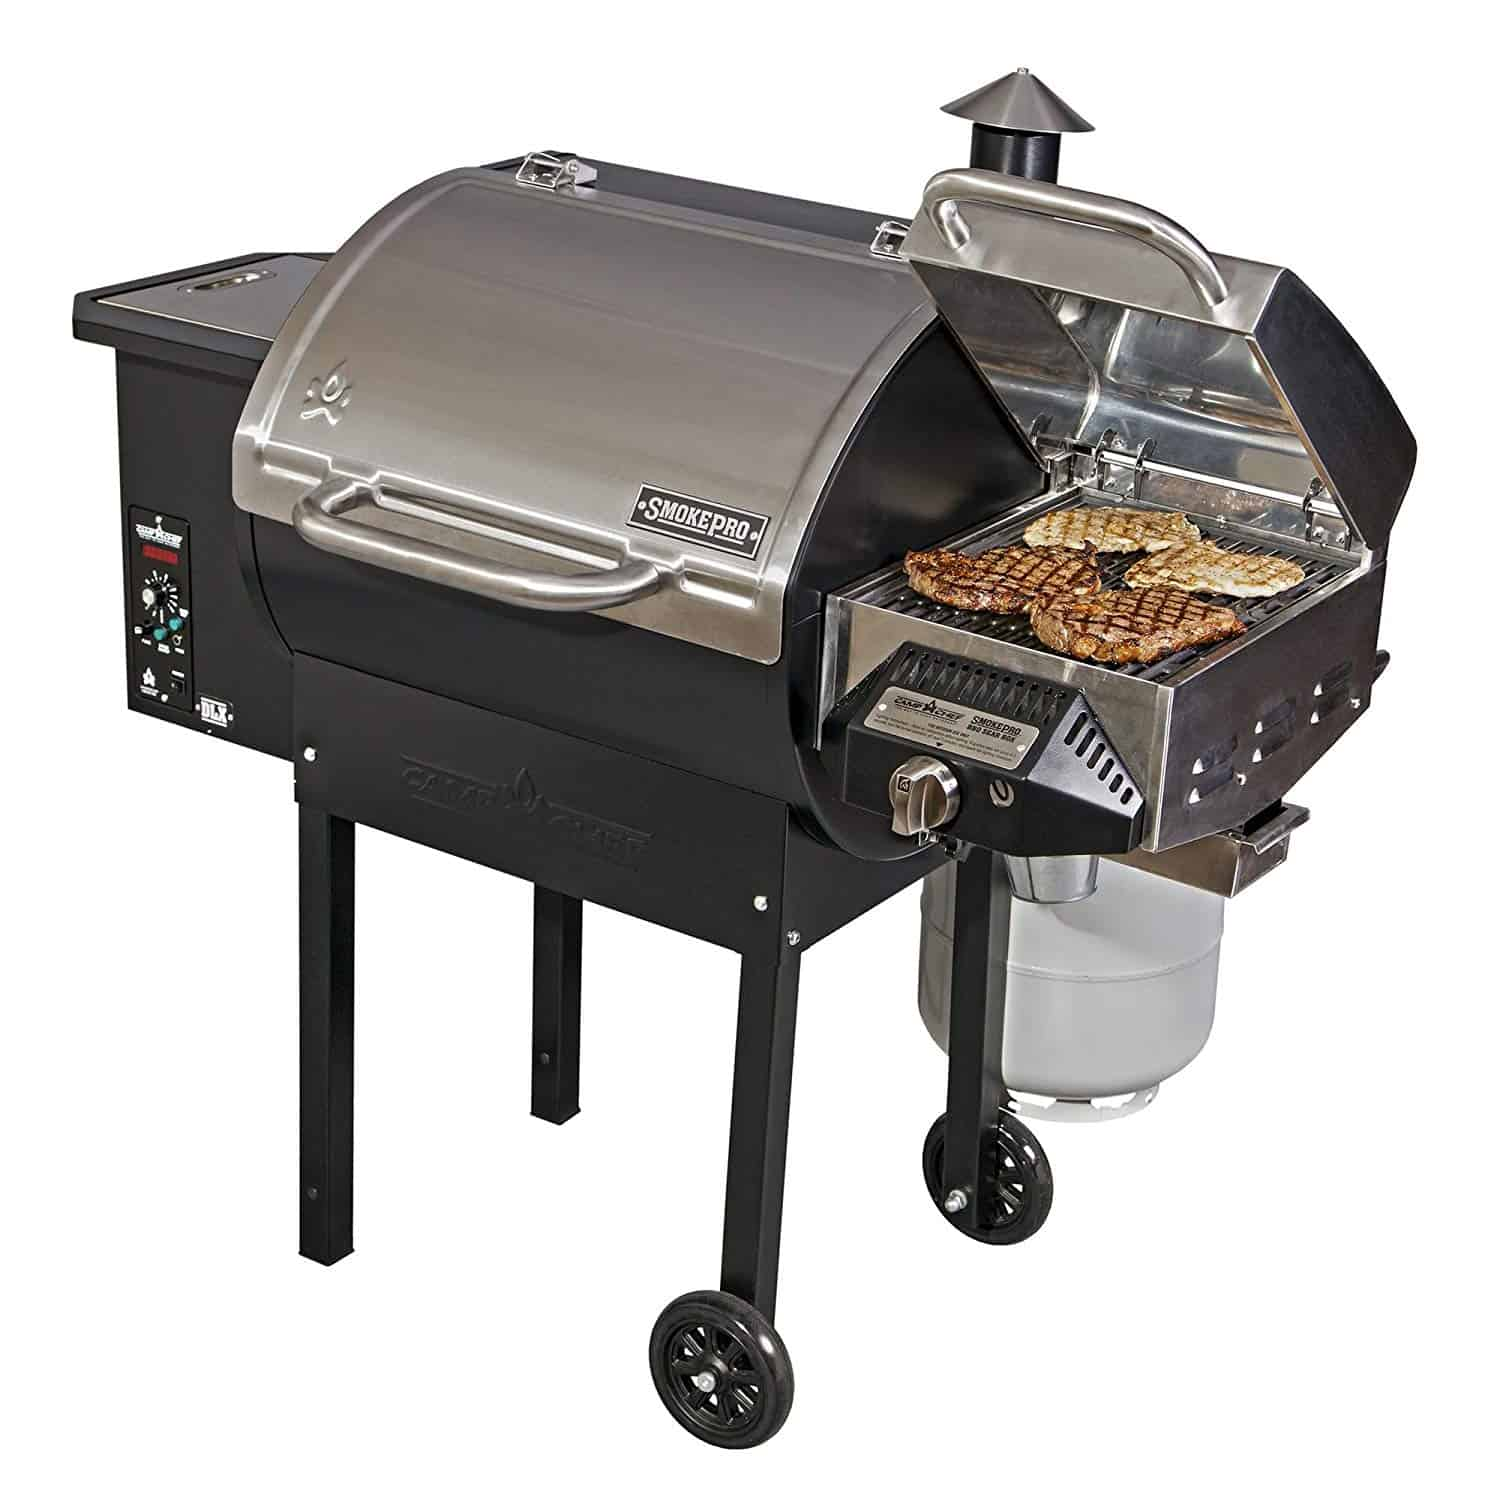 Camp Chef SmokePro DLX PG24B Pellet Grill (Bronze) with Sear Box